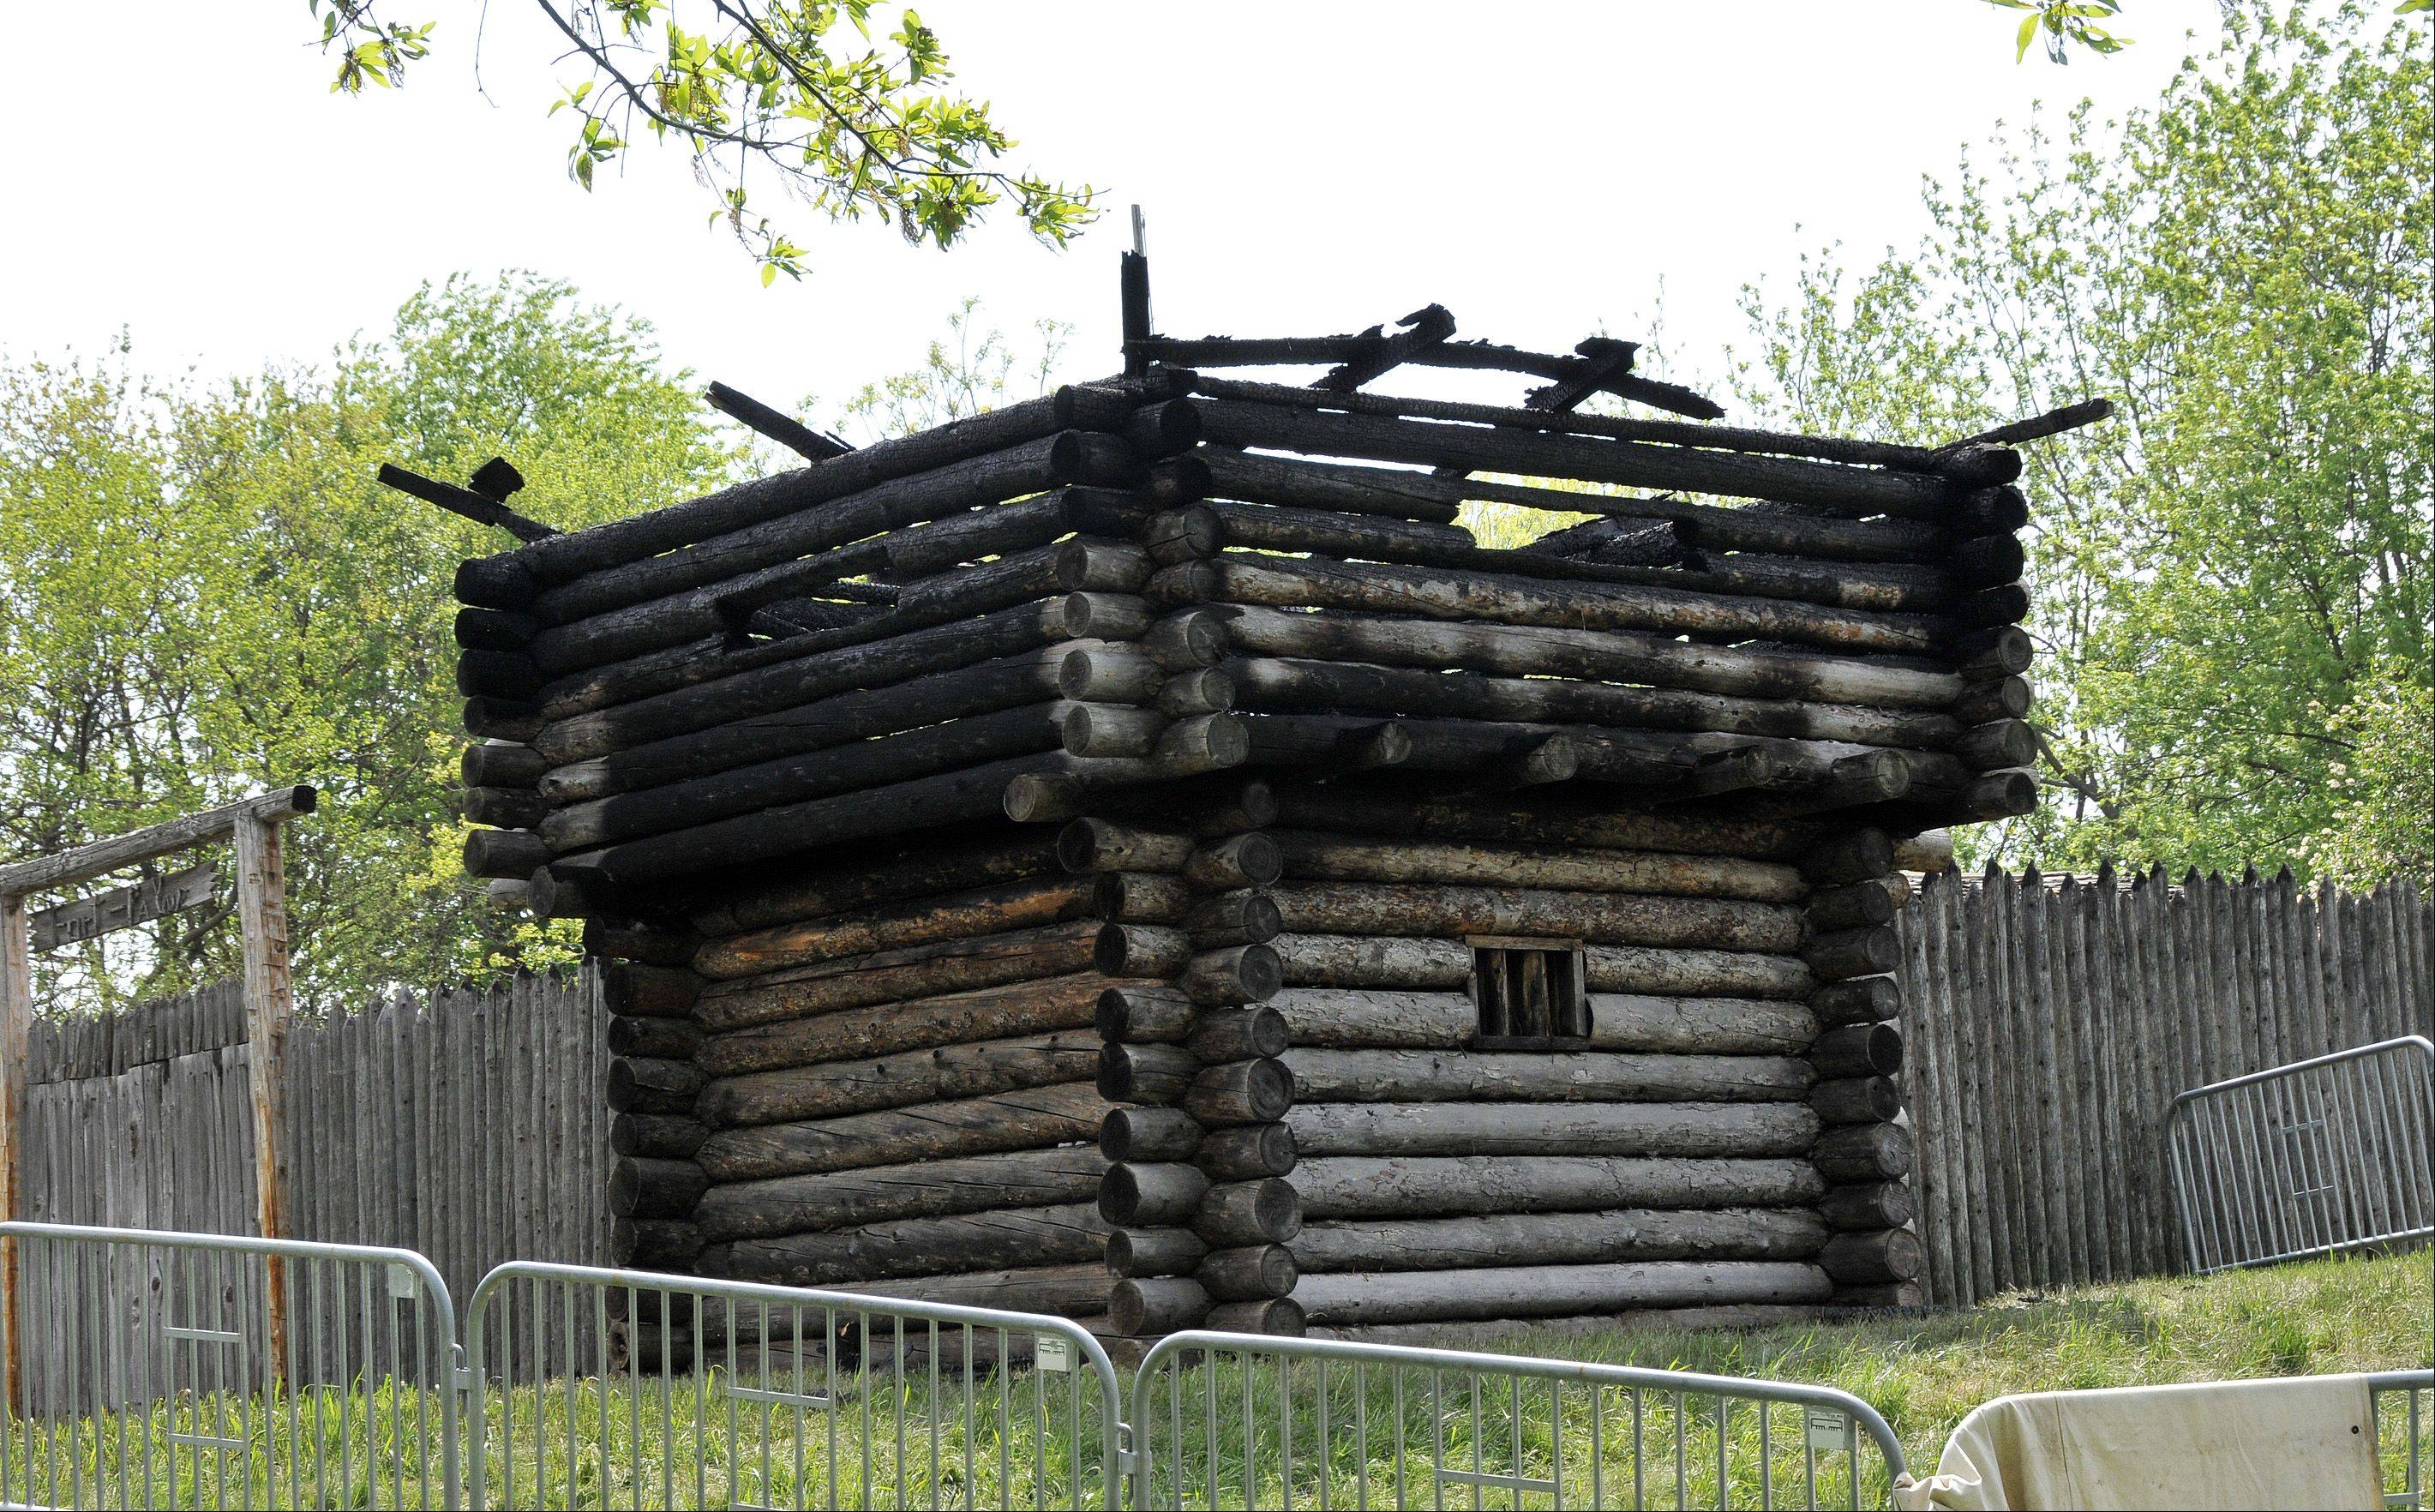 The fire-damaged blockhouse at Naper Settlement's Fort Payne will likely be demolished and replaced with stockade fencing. Naper Settlement officials are unsure if and when it would be replaced.